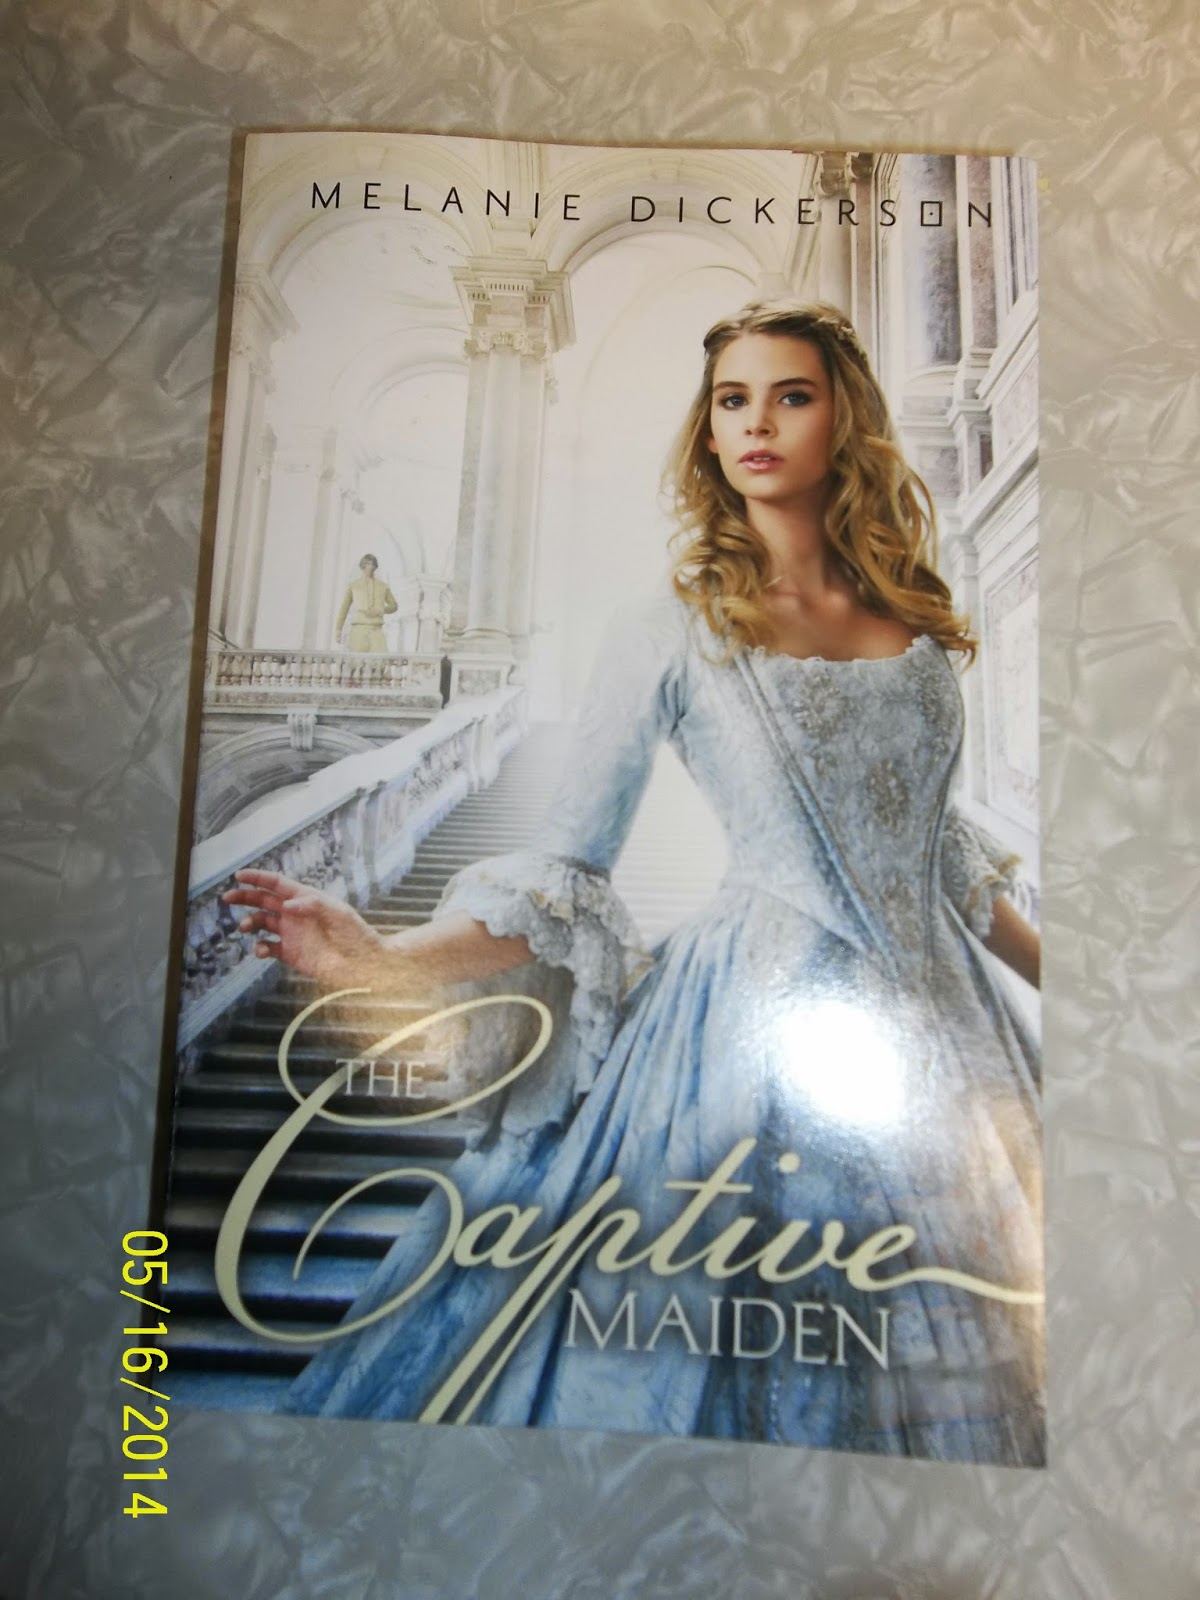 melanie dickerson s the captive maiden In author melanie dickerson's latest fairy-tale retelling, loosely based on beauty and the beast, annabel chapman is forced to work as an indentured servant at lord ranulf's manor house.